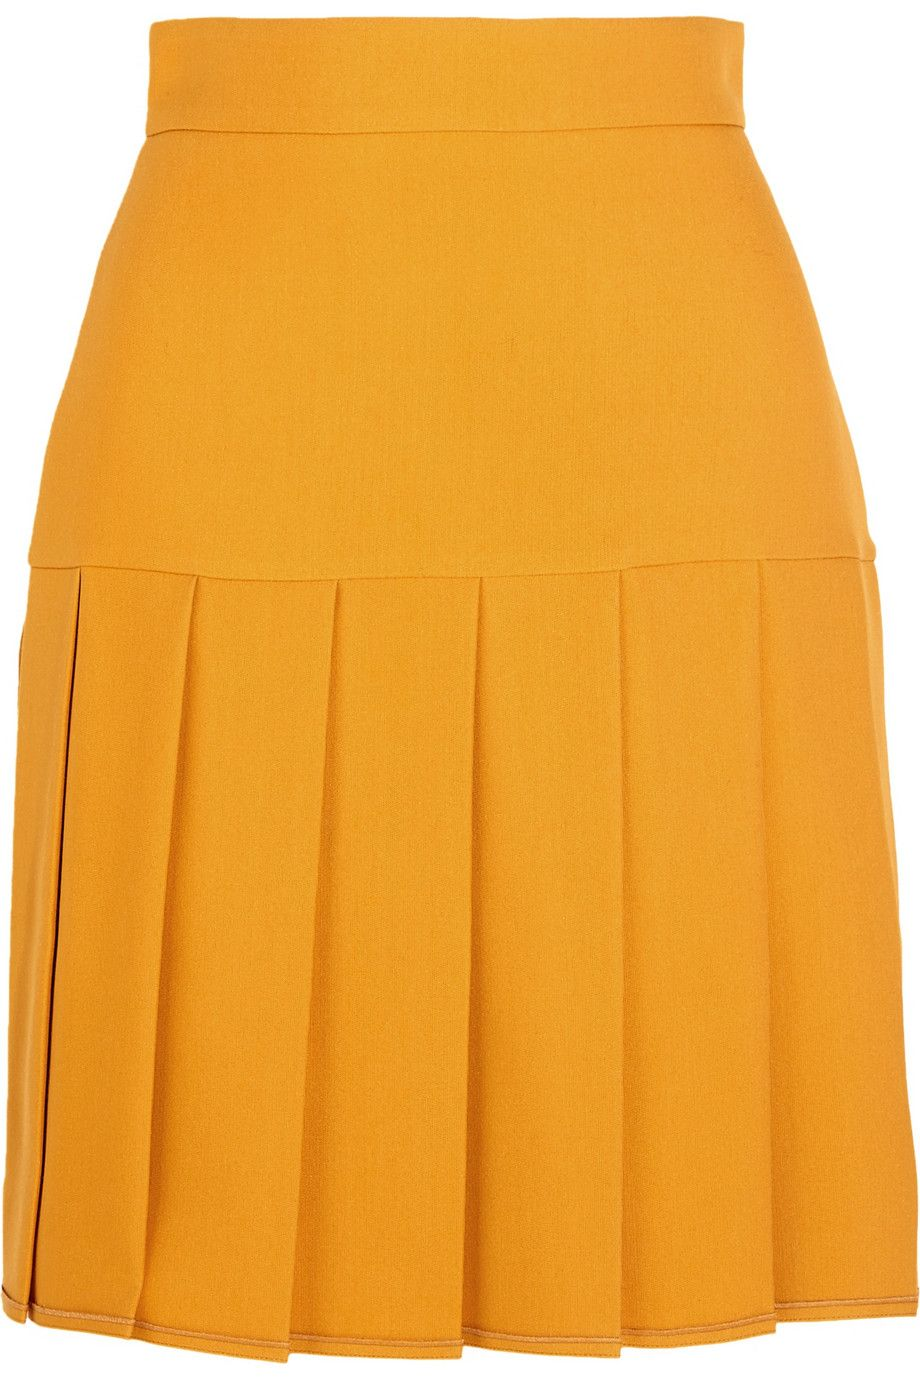 6eed3e0b8 Gucci | Pleated silk and wool-blend crepe mini skirt | NET-A-PORTER.COM